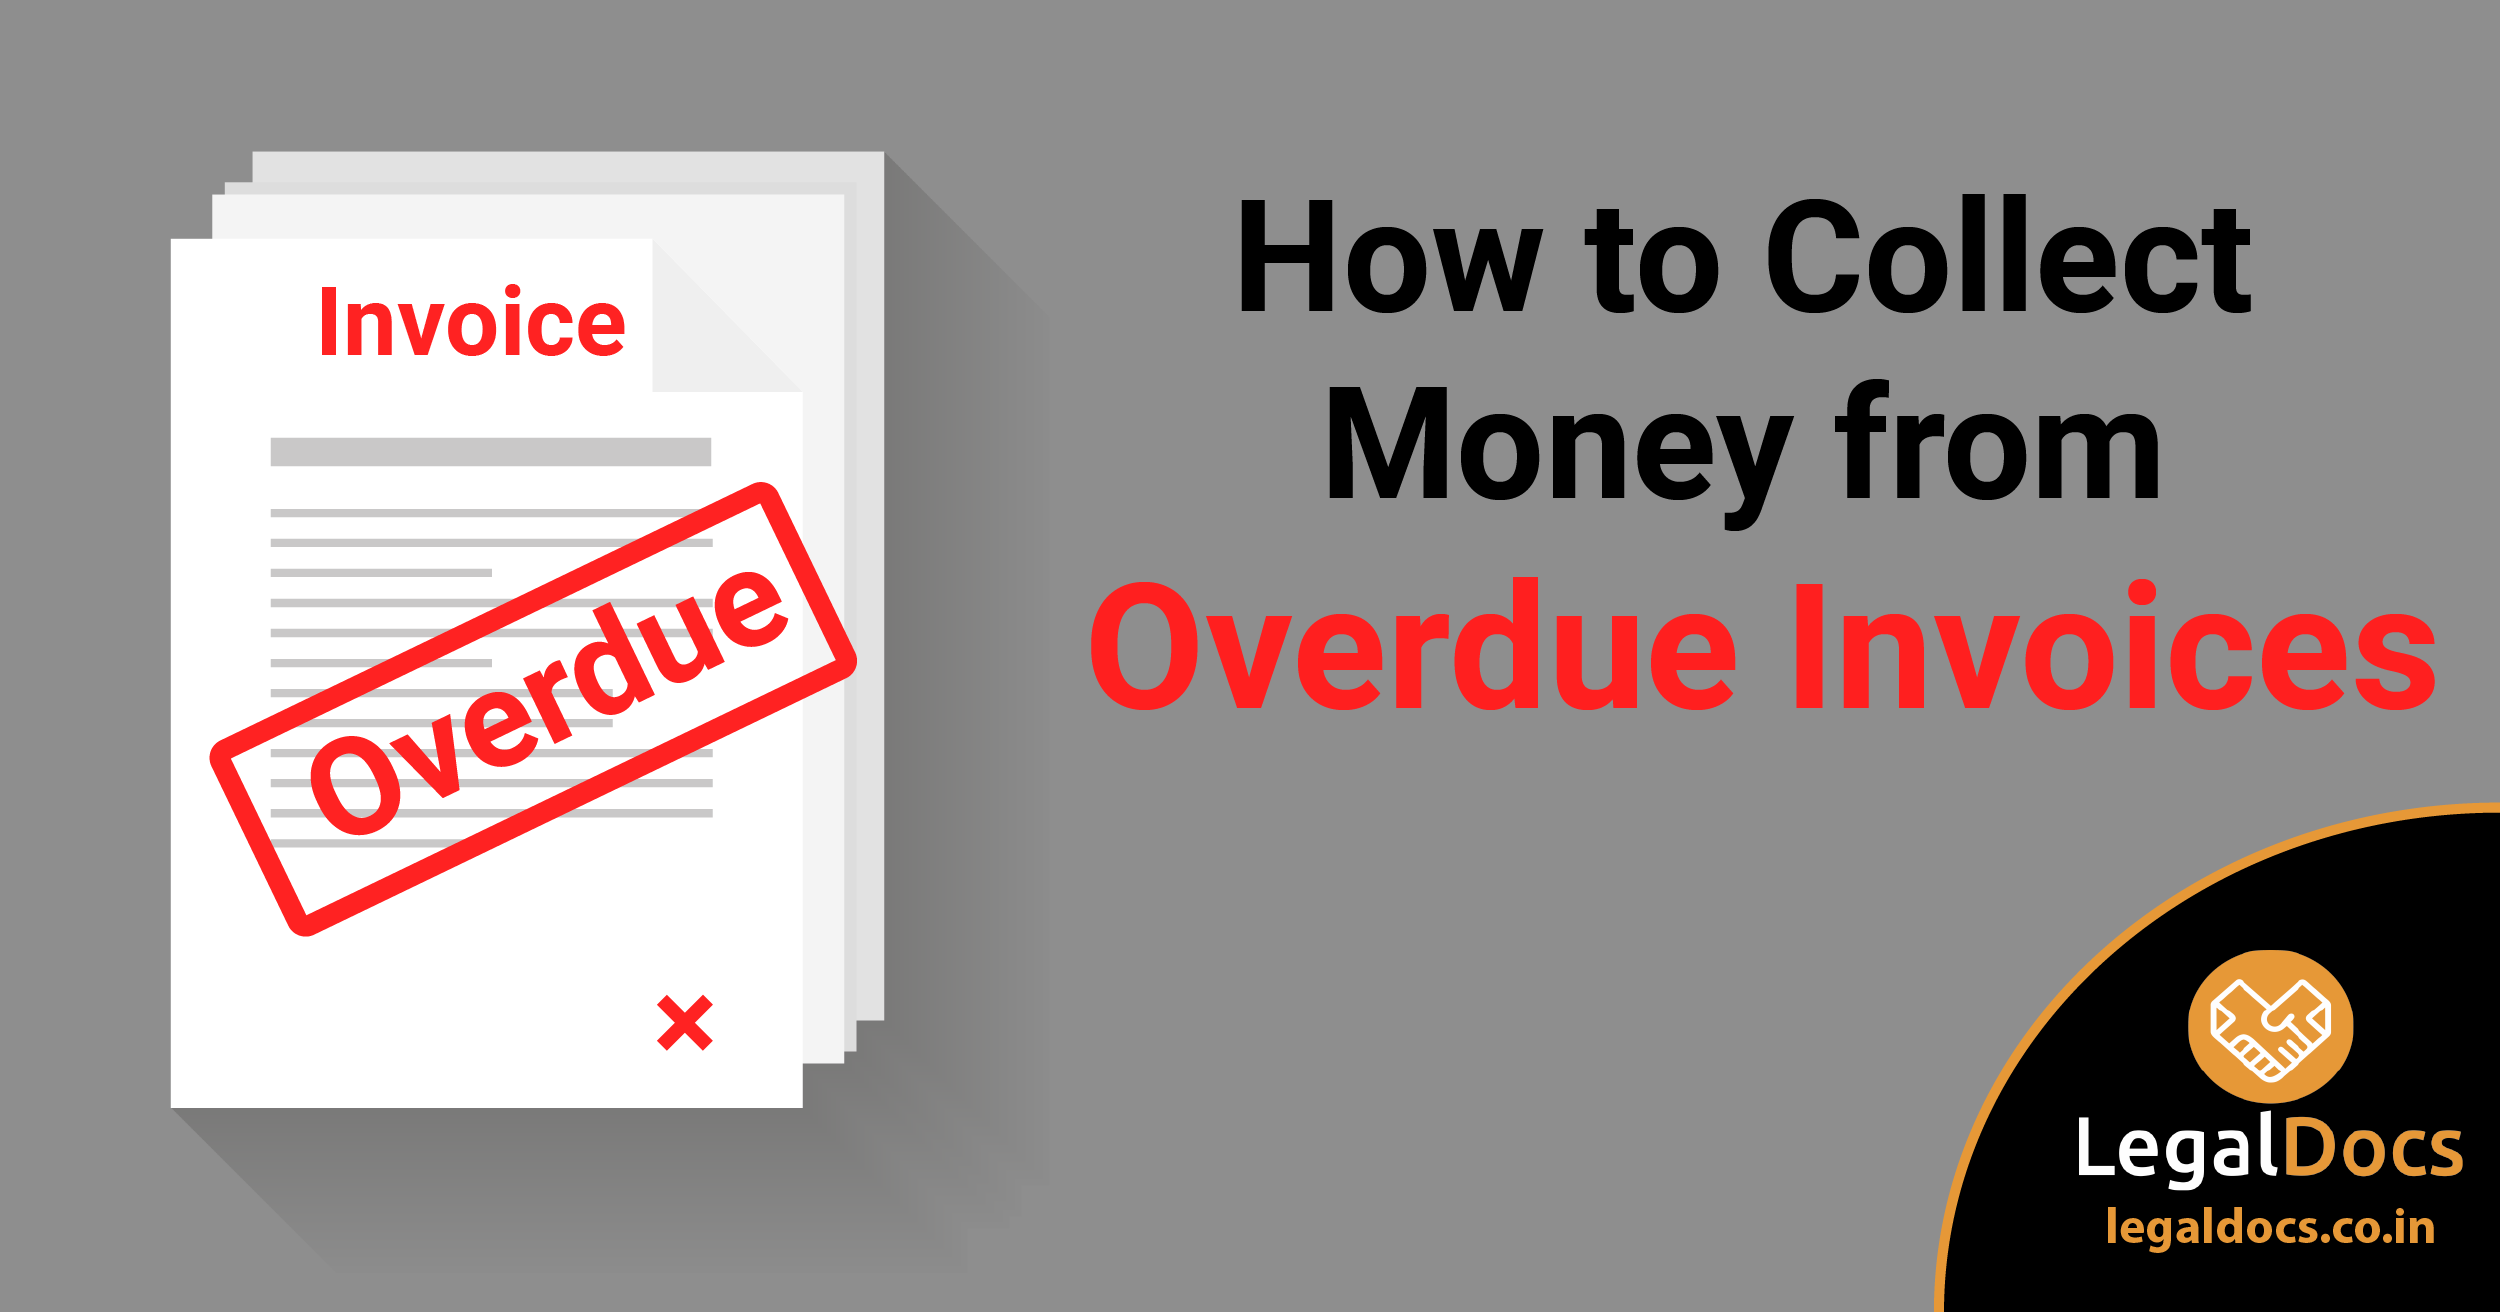 How to Collect Money from Overdue Invoices? - LegalDocs